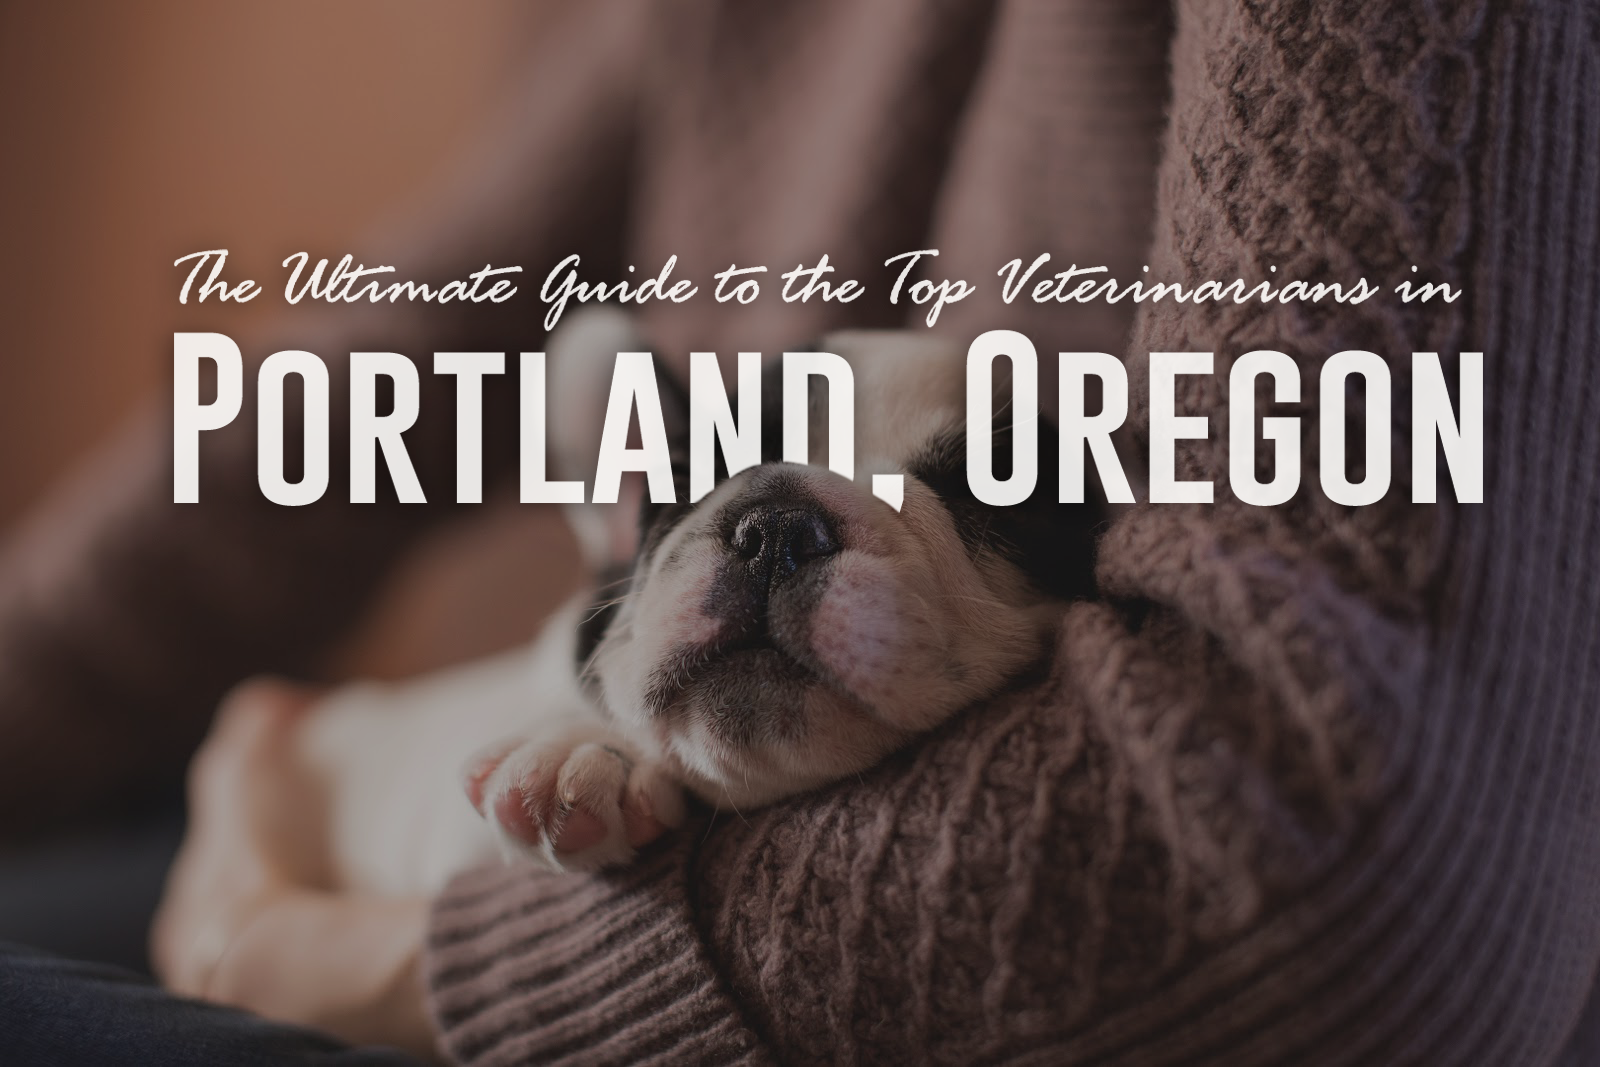 The Ultimate Guide to the Top Veterinarians in Portland, Oregon